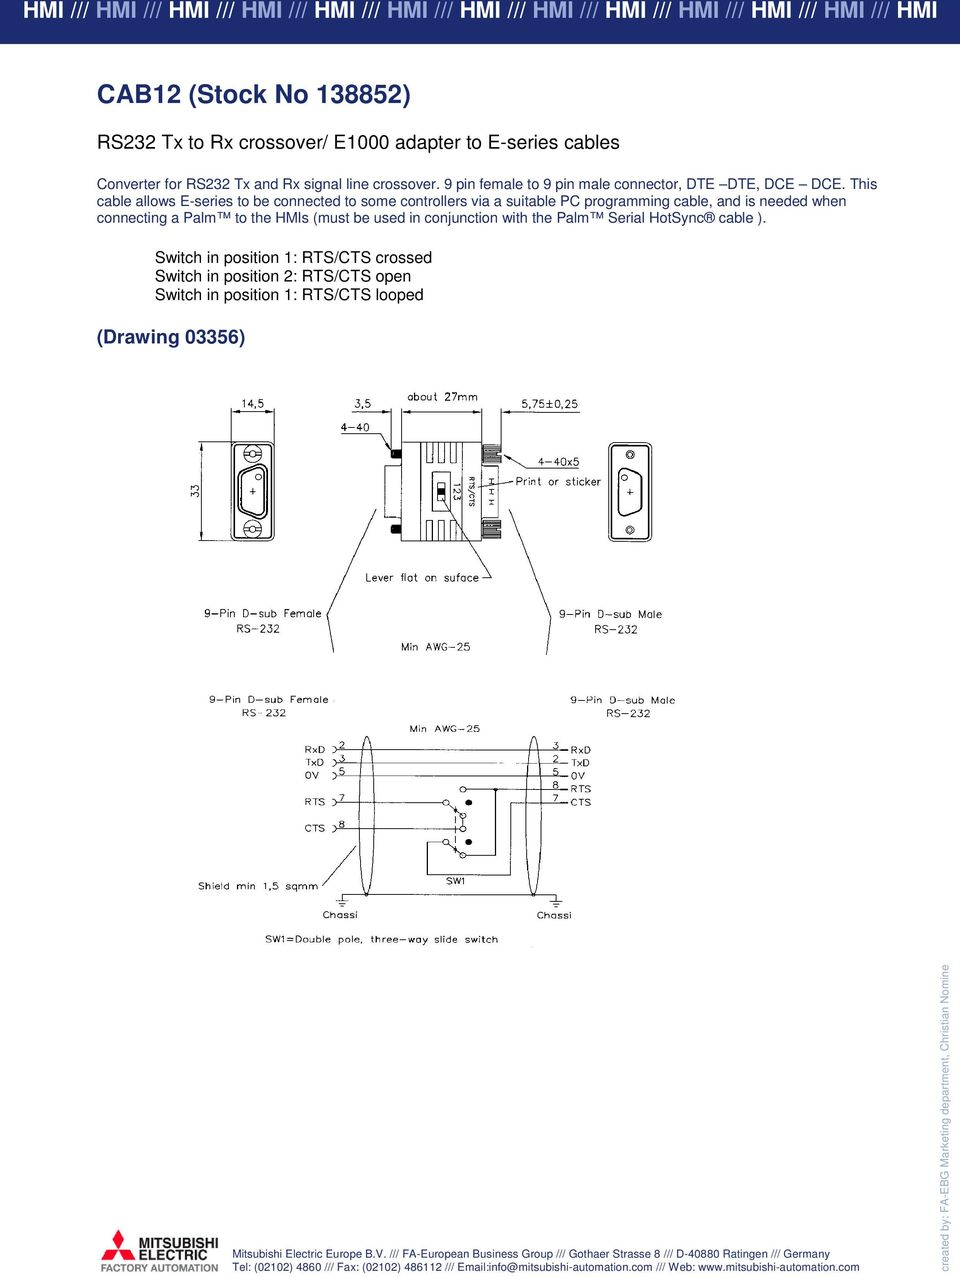 E Series E1000 Cable Guide Pdf Diagram Together With Rs 232 Serial Port Pinout On 9 Pin Rs232 This Allows To Be Connected Some Controllers Via A Suitable Pc